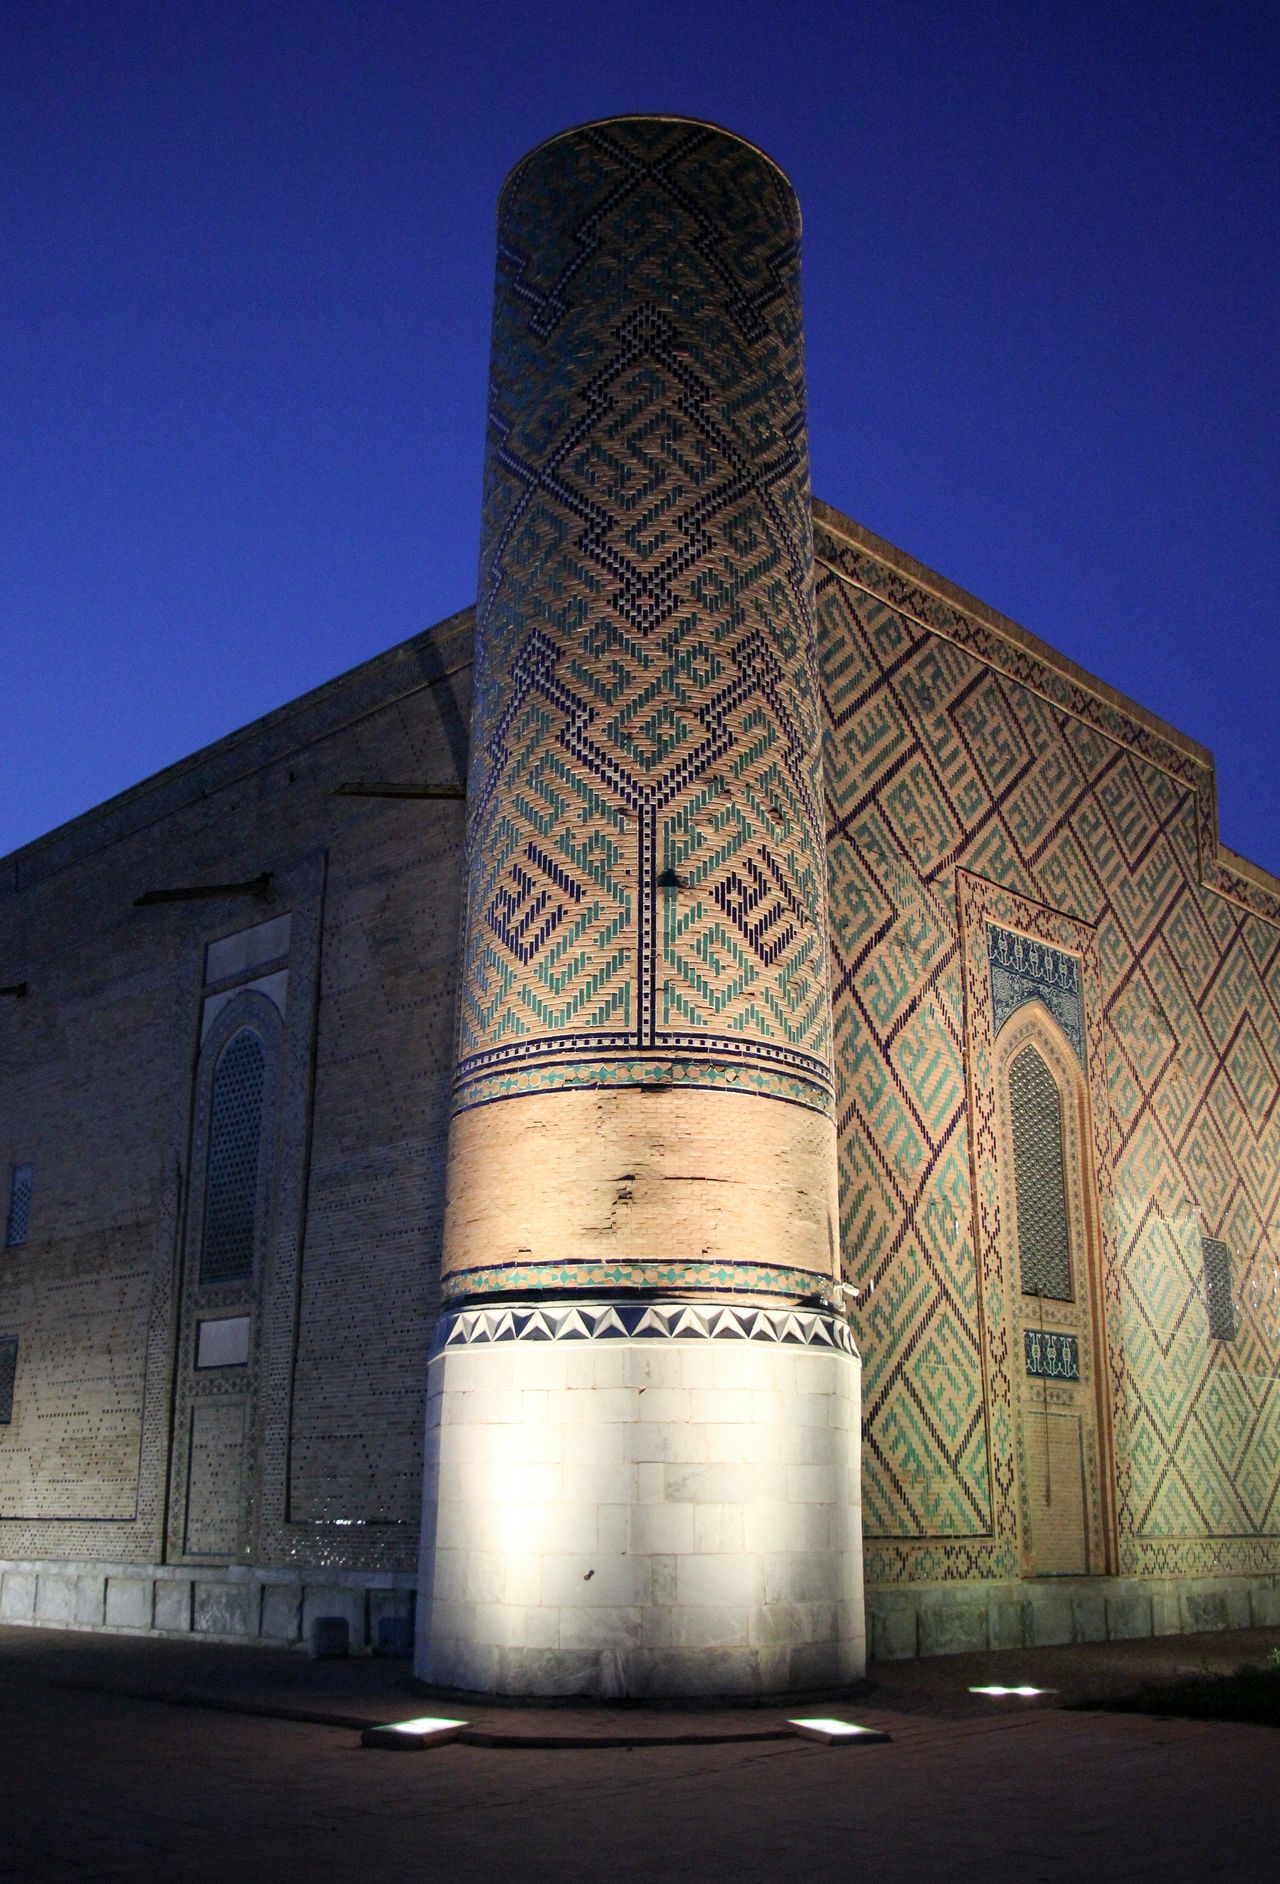 Architectural Column Architecture Built Structure Clear Sky Day Evening Sky Islamic Architecture Islamic Art Low Angle View Madrassa No People Outdoors Registan Samarkand Samarqand Silk Road Sky Uzbekistan